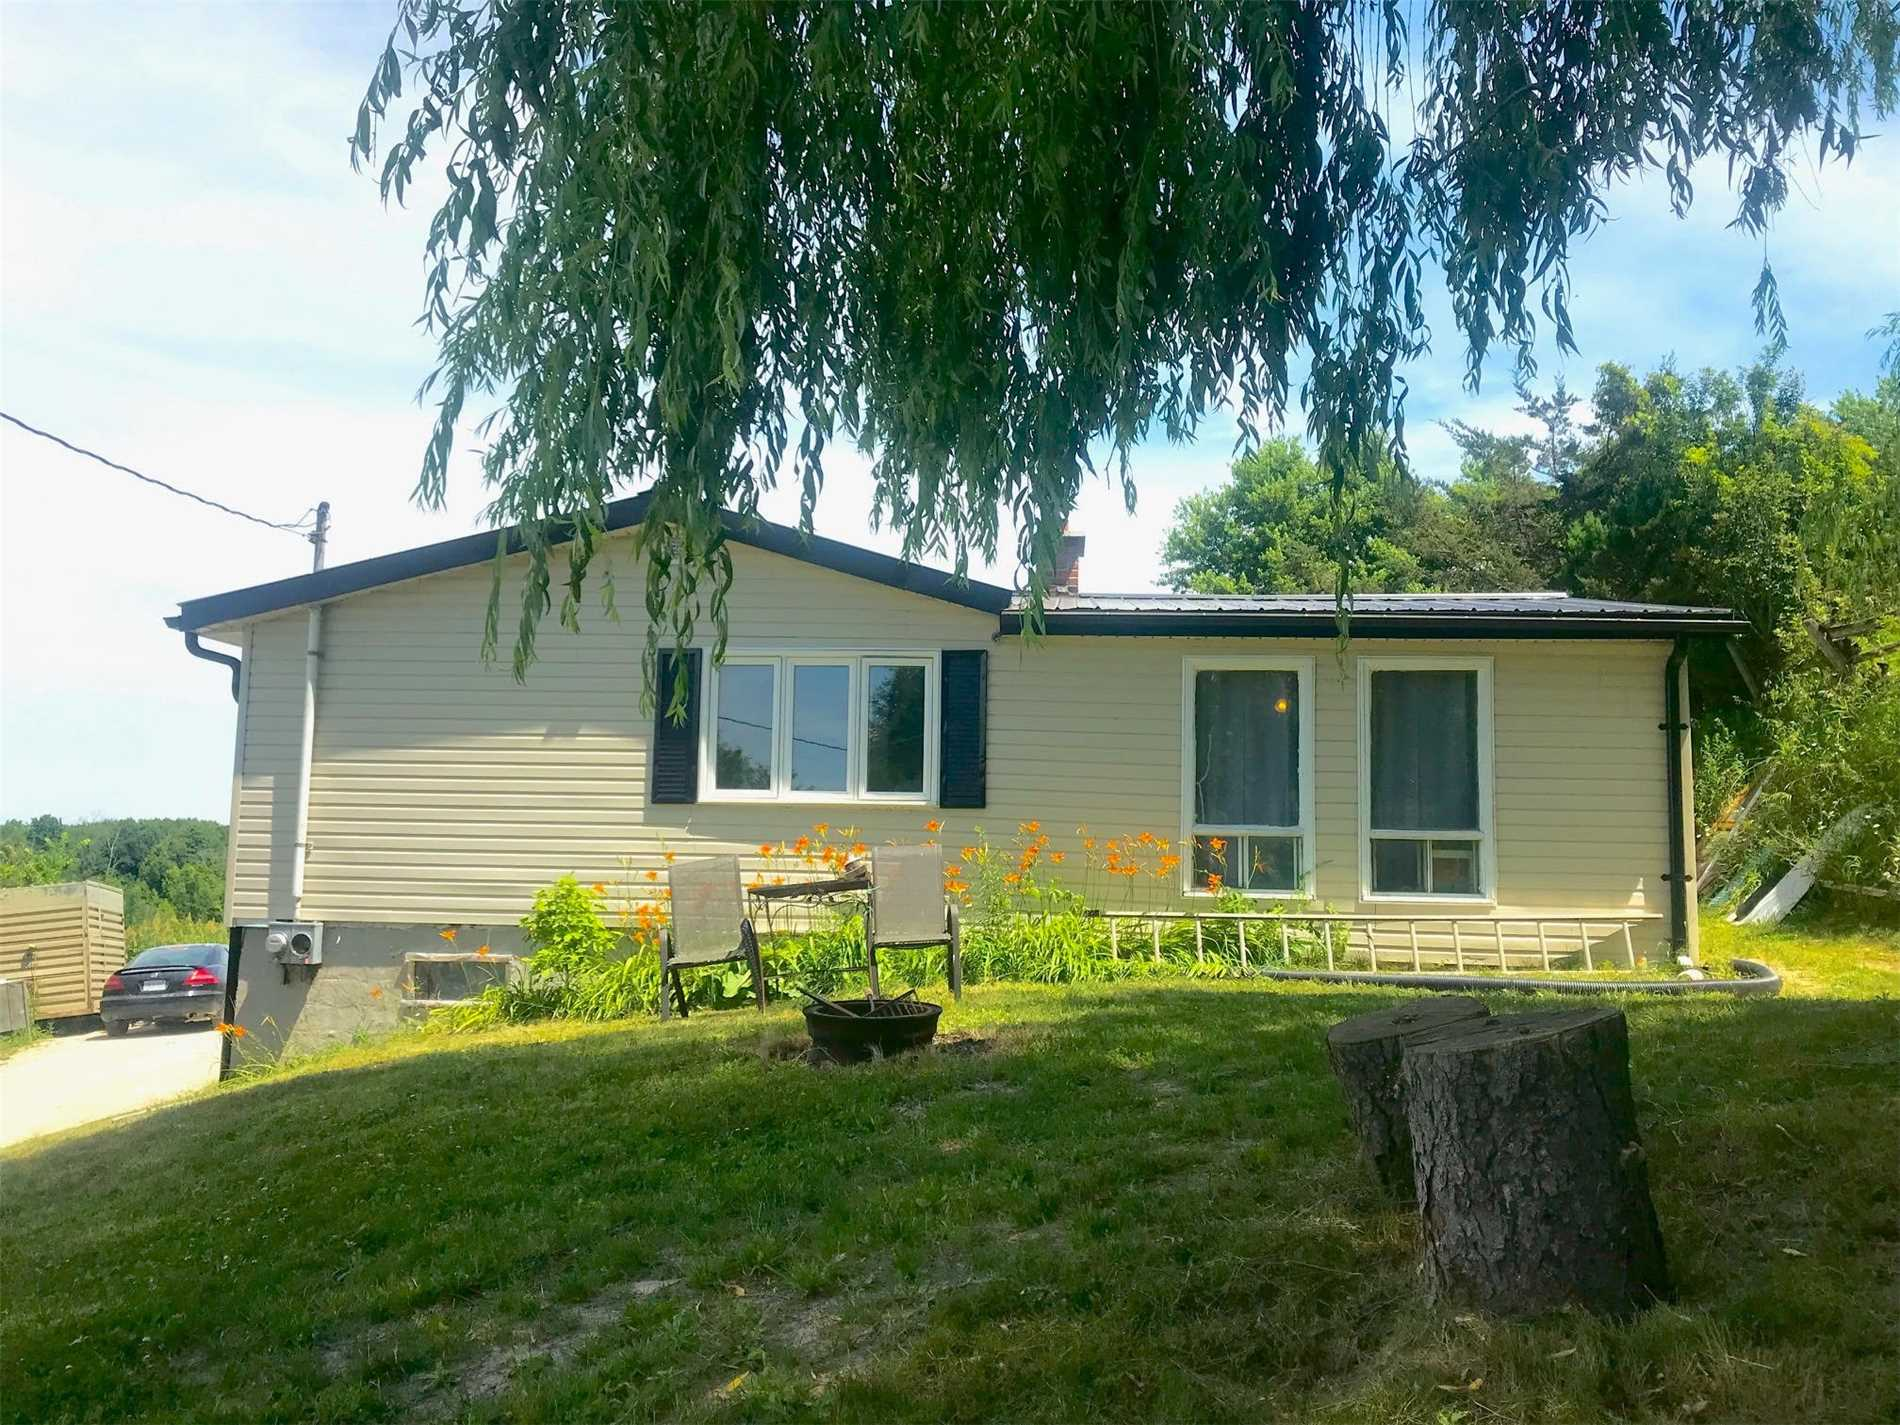 Located Just Outside Of Glencairn On Nearly Half An Acre, This 2 Bedroom Bungalow Offers Incredible Potential In A Beautiful, Private Location. Large Living Room, Eat-In Kitchen, Walkout Basement, Walkout From Living Room And Kitchen. 25 Minutes To Barrie & The 400, 25 Minutes To Alliston, 30 Minutes To Collingwood.